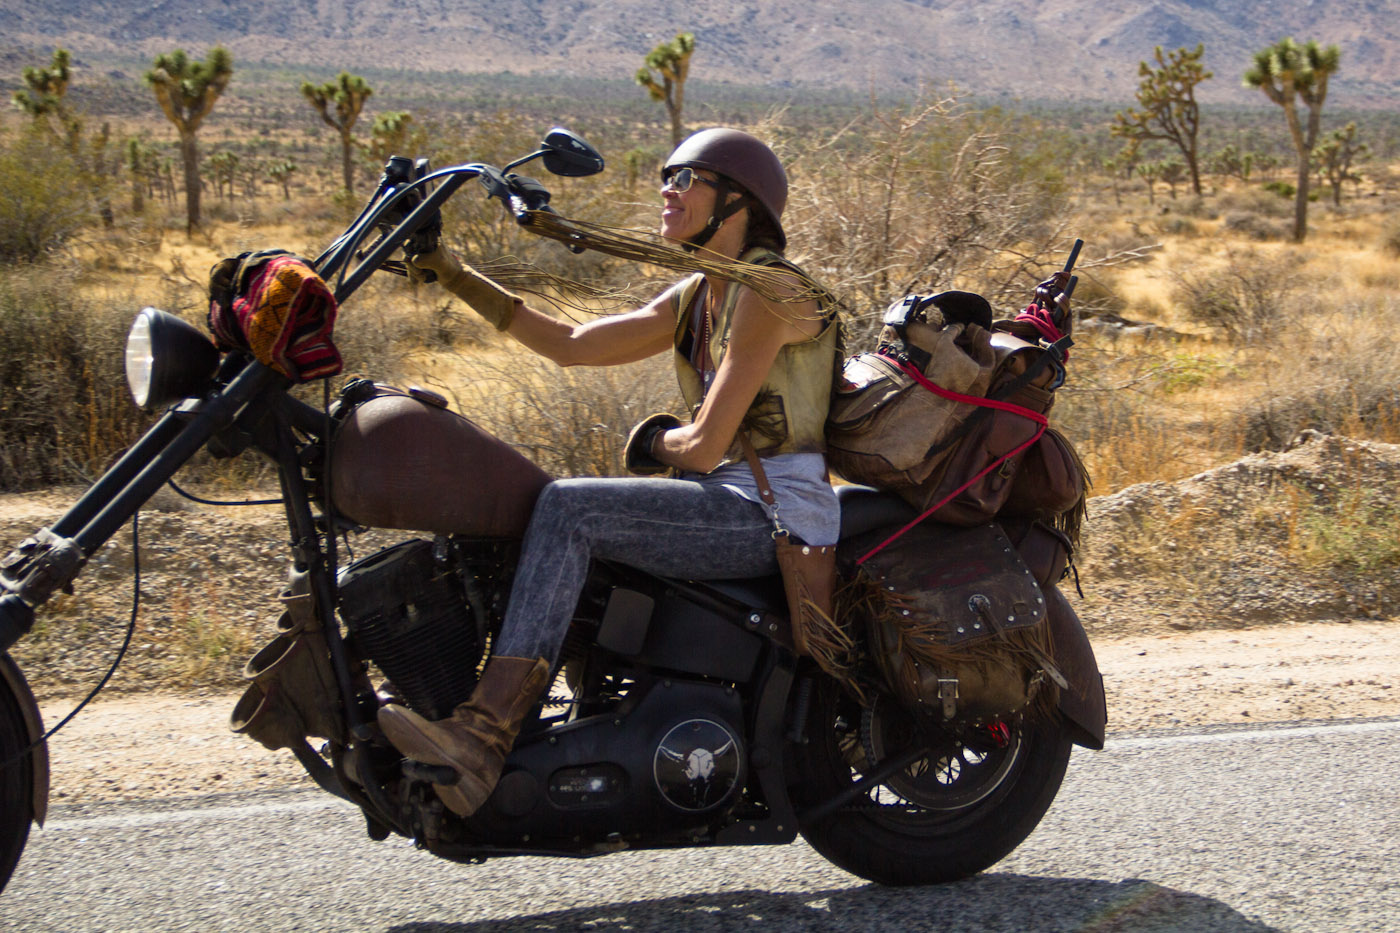 (Infamous Betsy Huelscamp on her Harley)